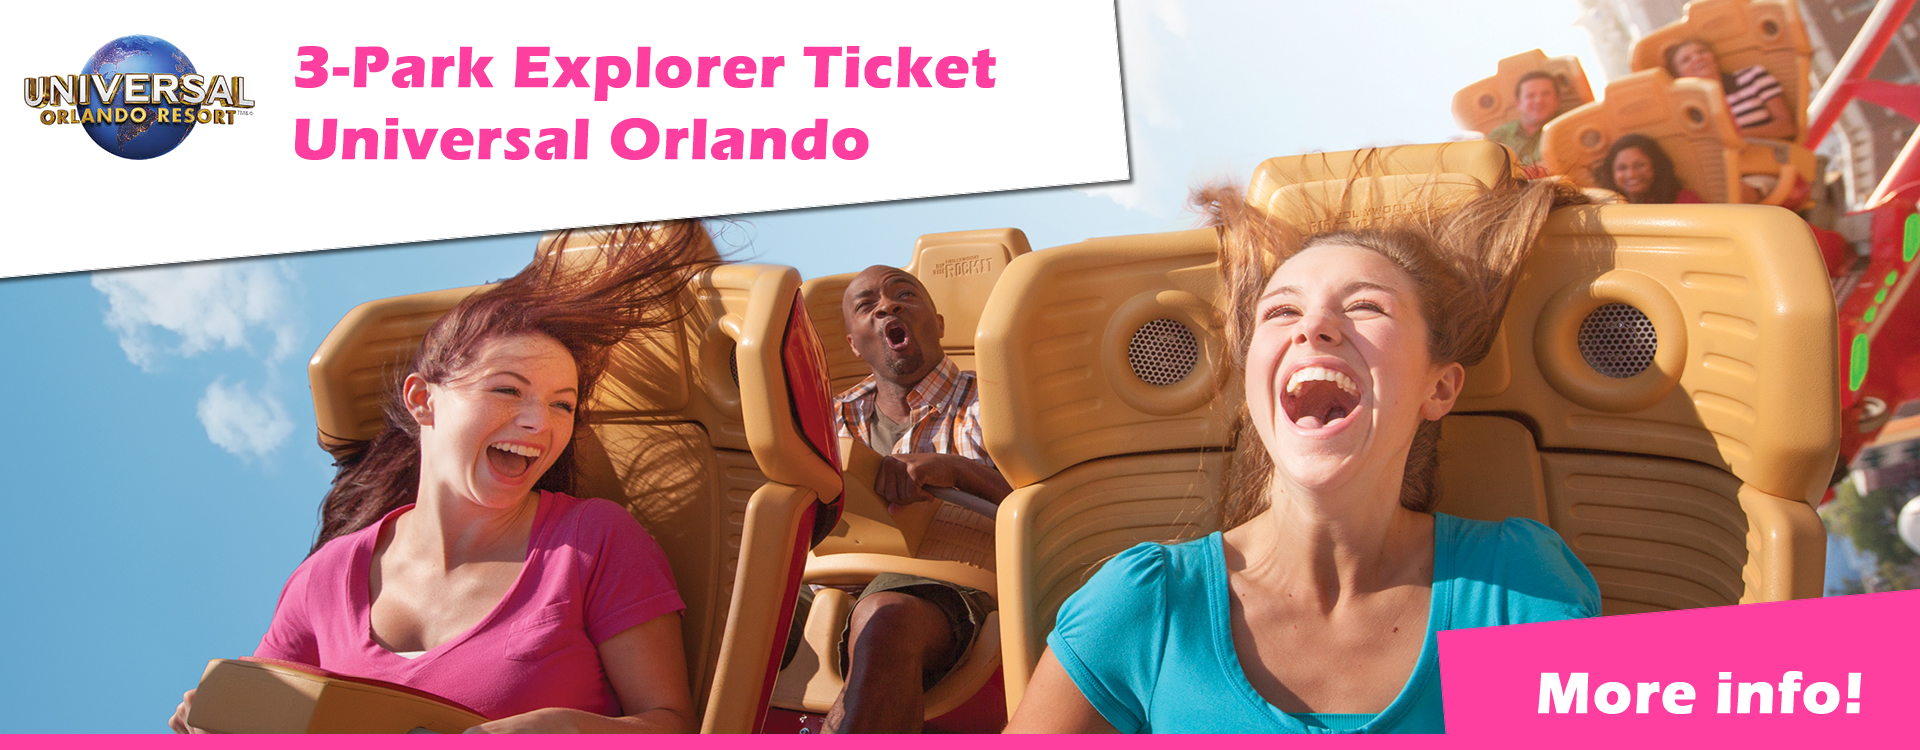 https://www.themeparktickets.co.uk/Ticket/Universal-3-Park-Explorer-Tickets